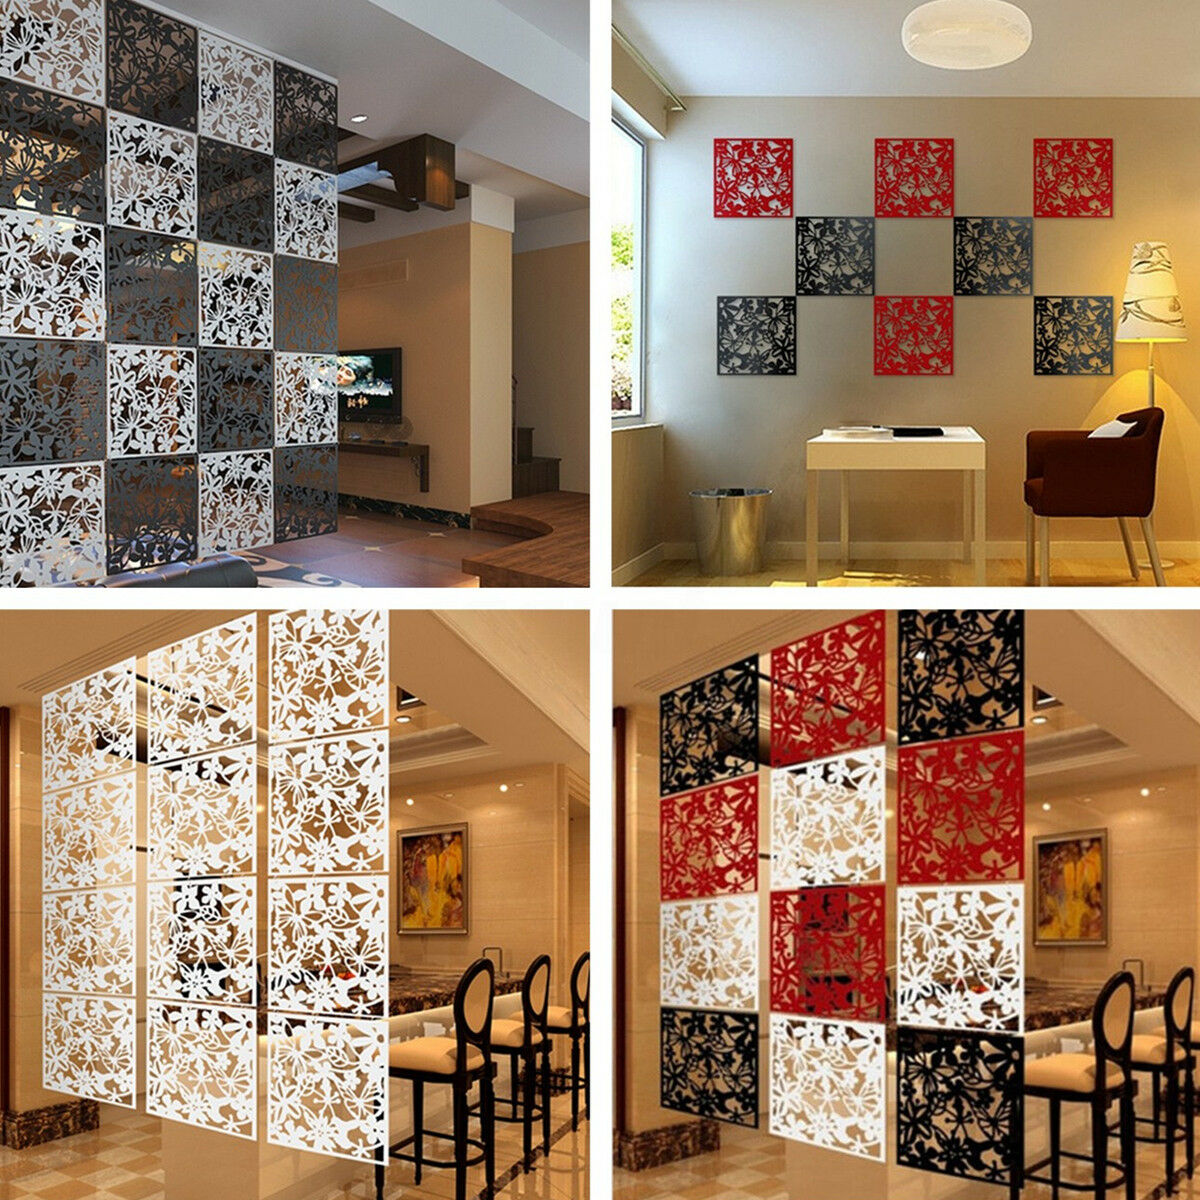 Room Partition Wall: 8Pcs Butterfly Flower Hanging Screen Curtain Room Divider